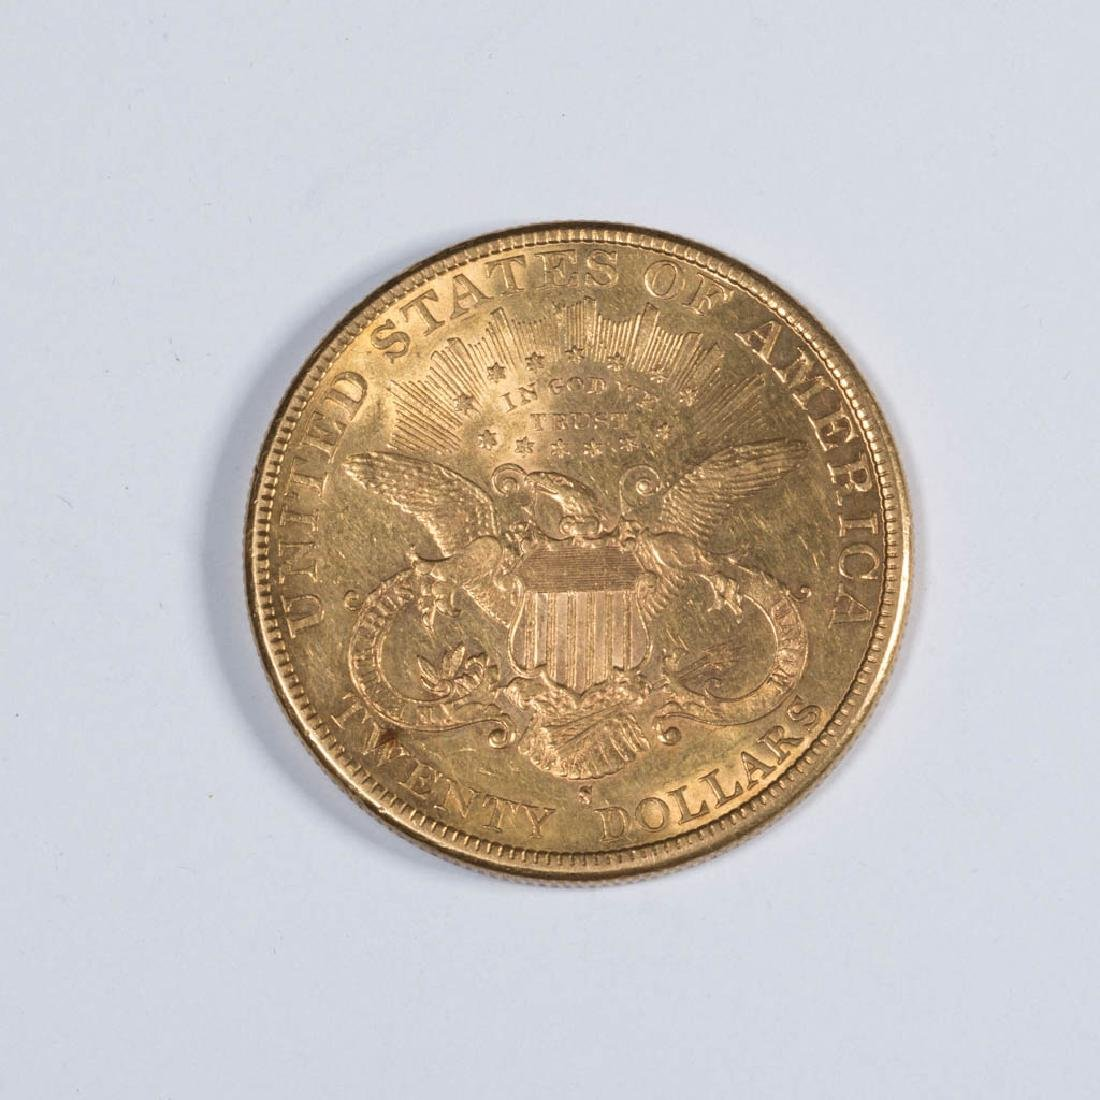 UNITED STATES 1896-S LIBERTY HEAD $20 GOLD COIN - 2